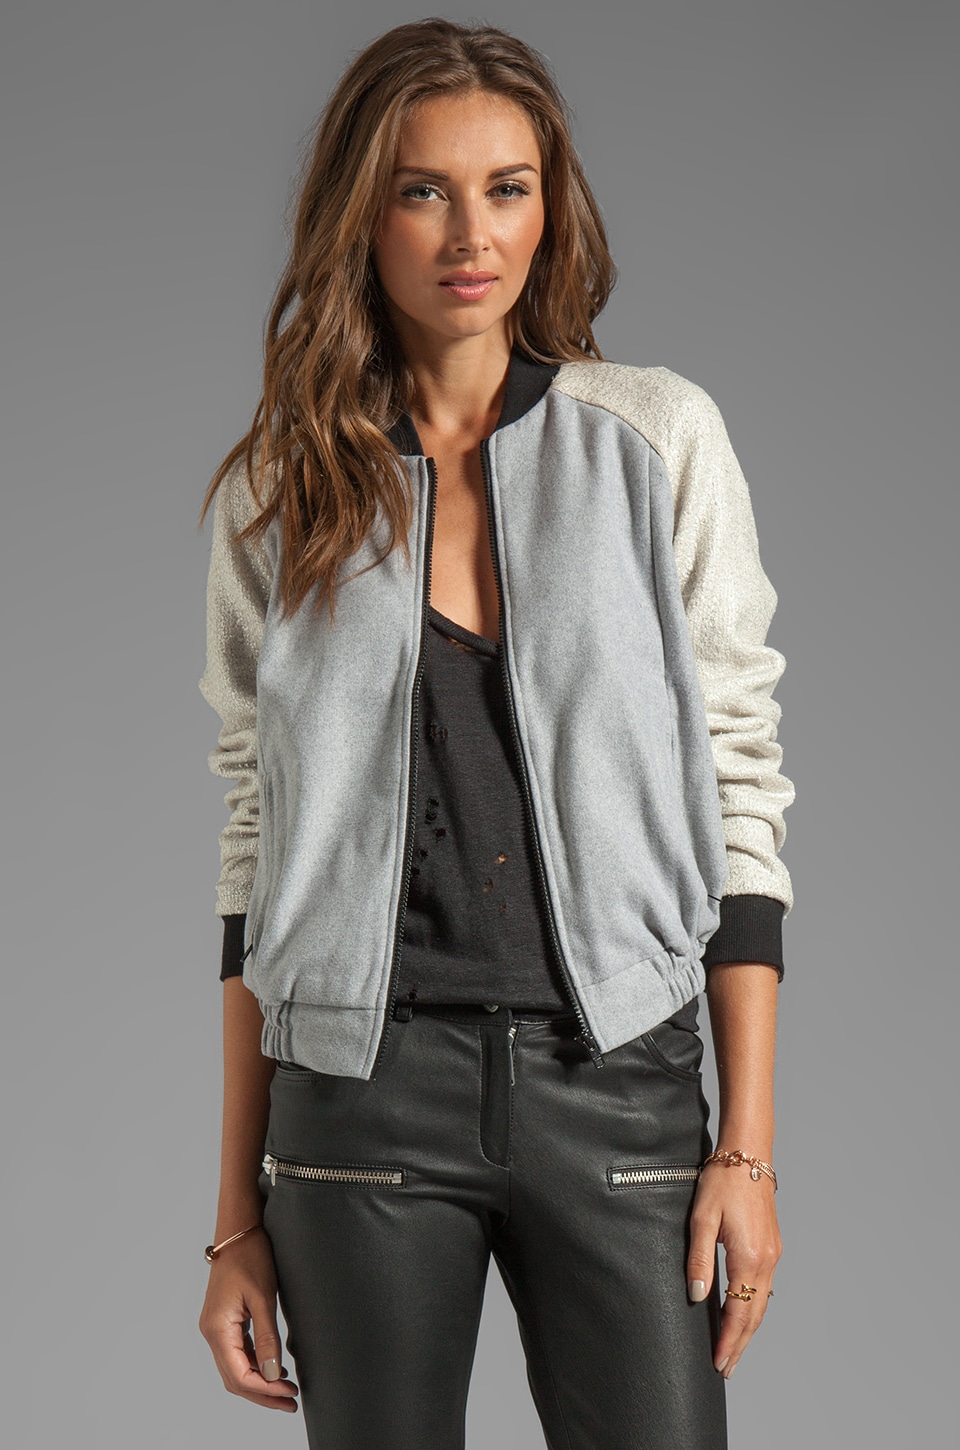 C/MEO Ask Me Anything Bomber Jacket in Willow Grey/Silver